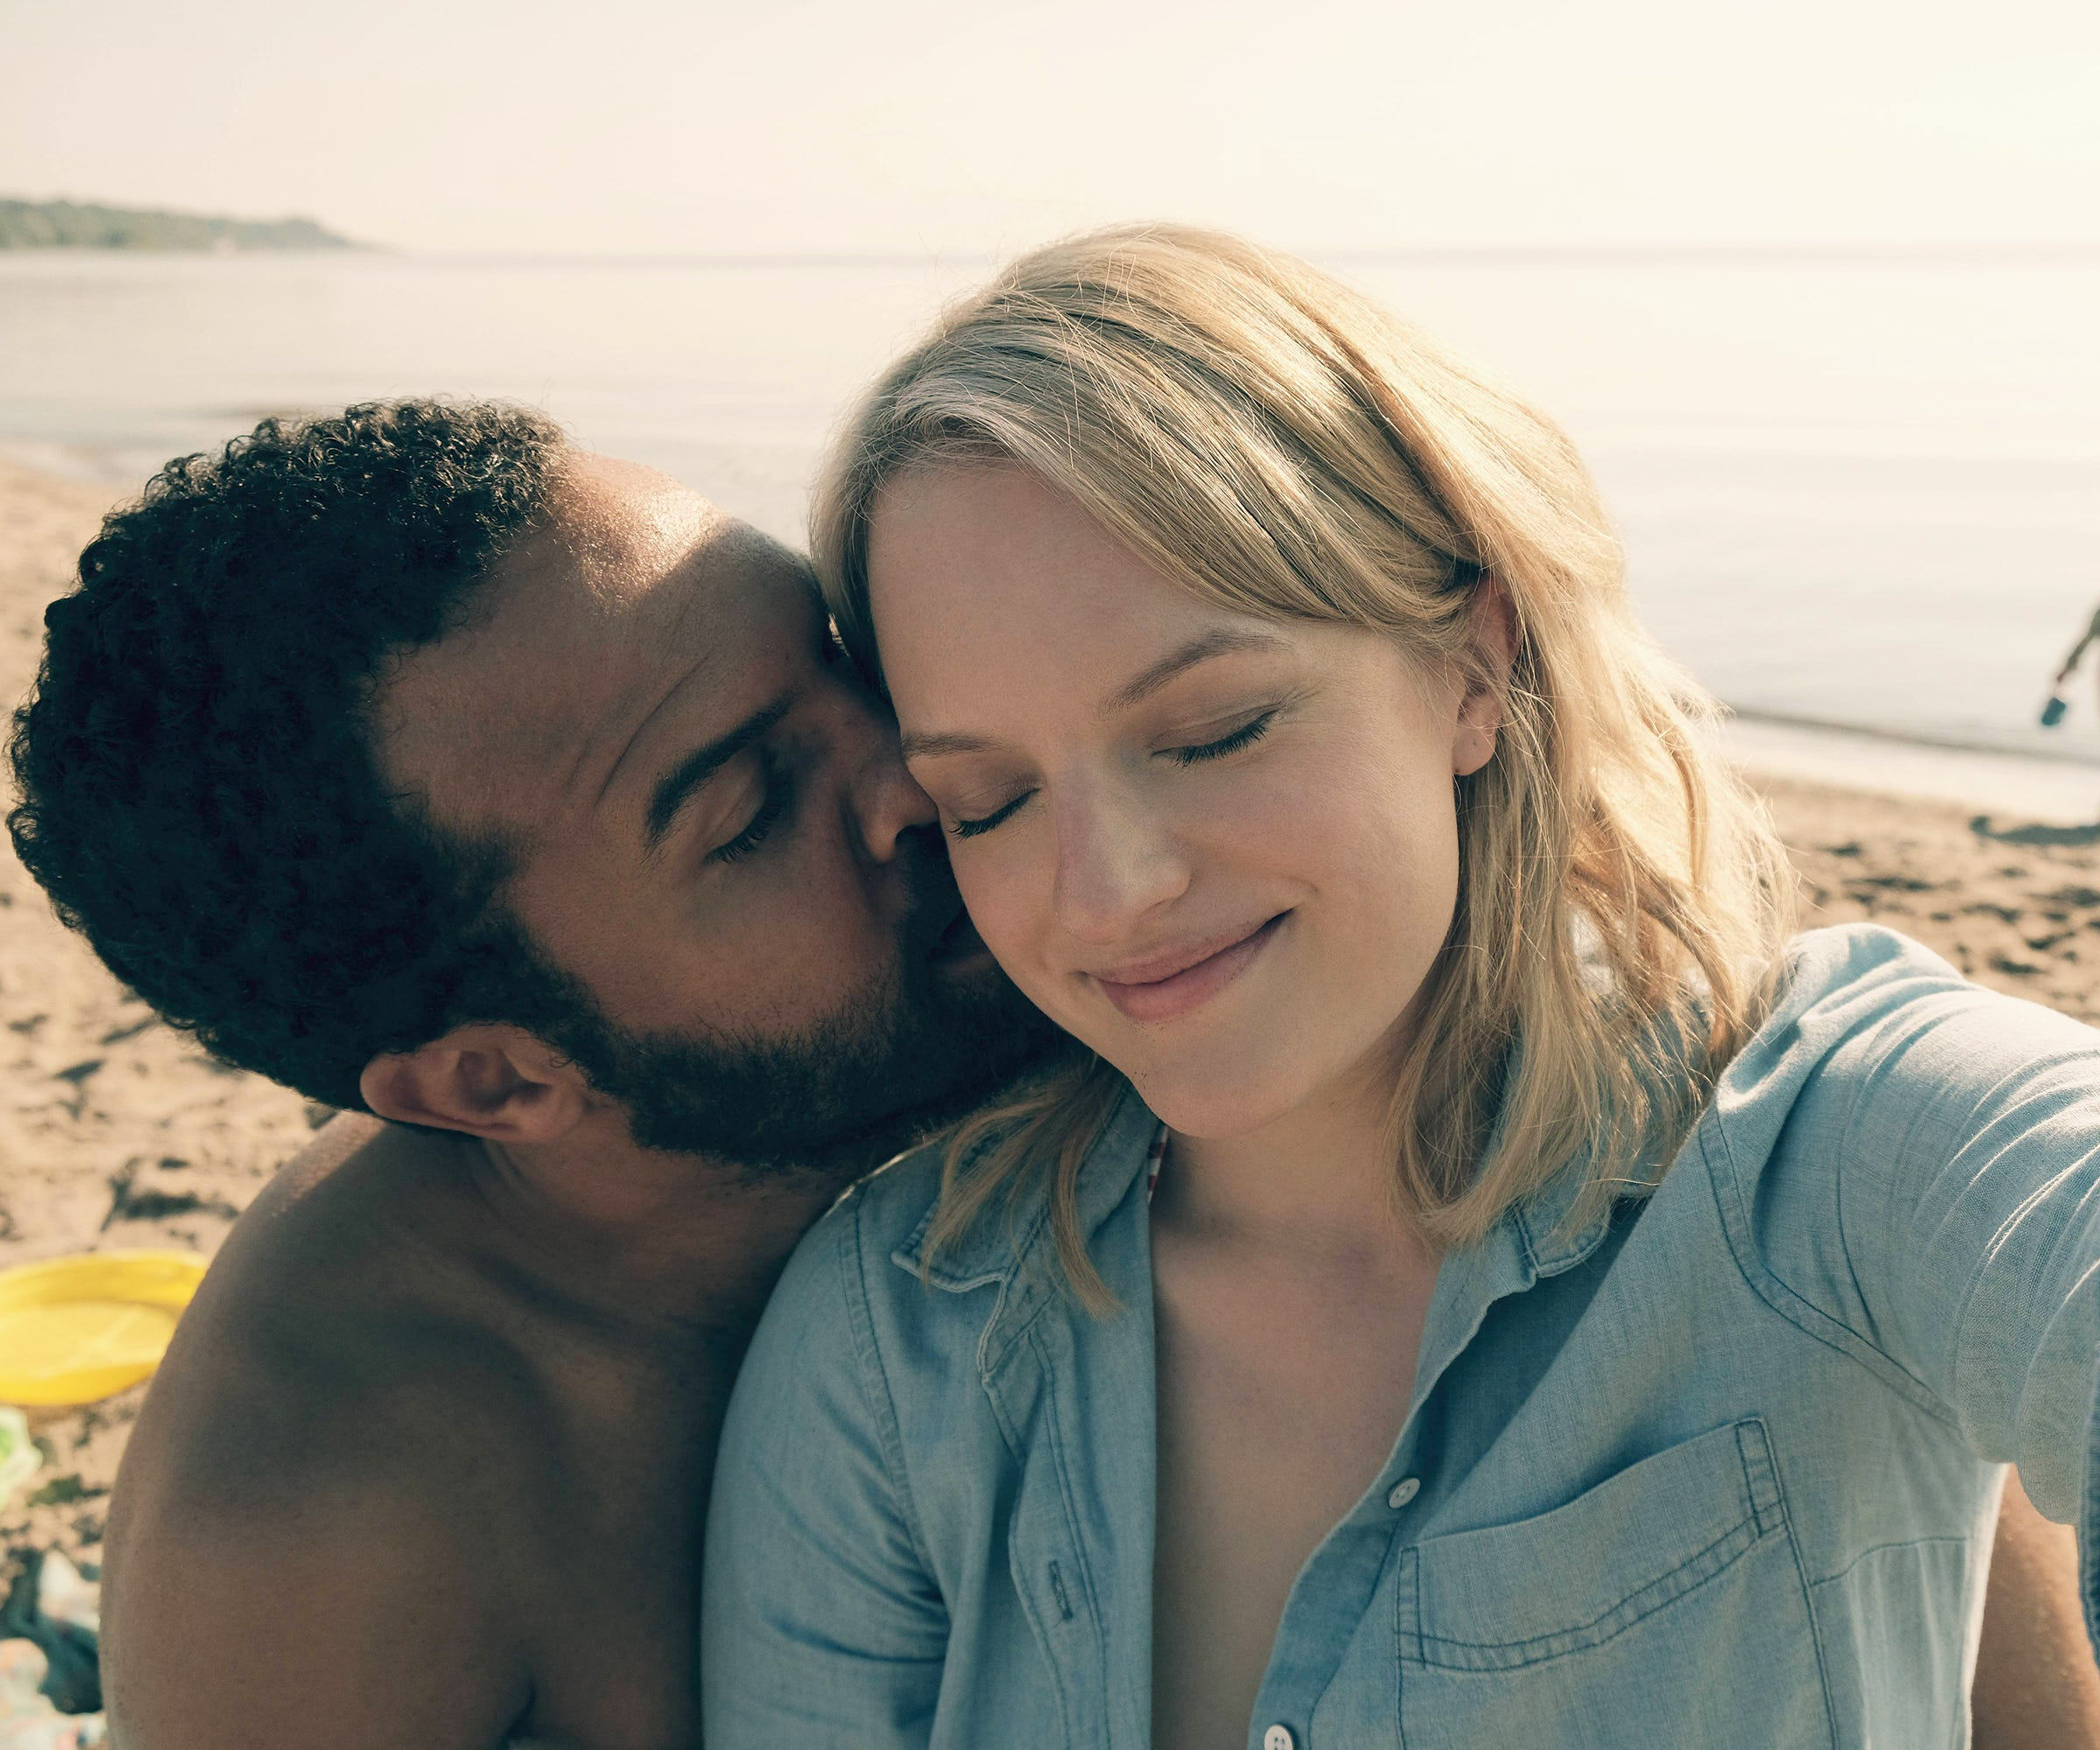 Interracial dating cultural differences